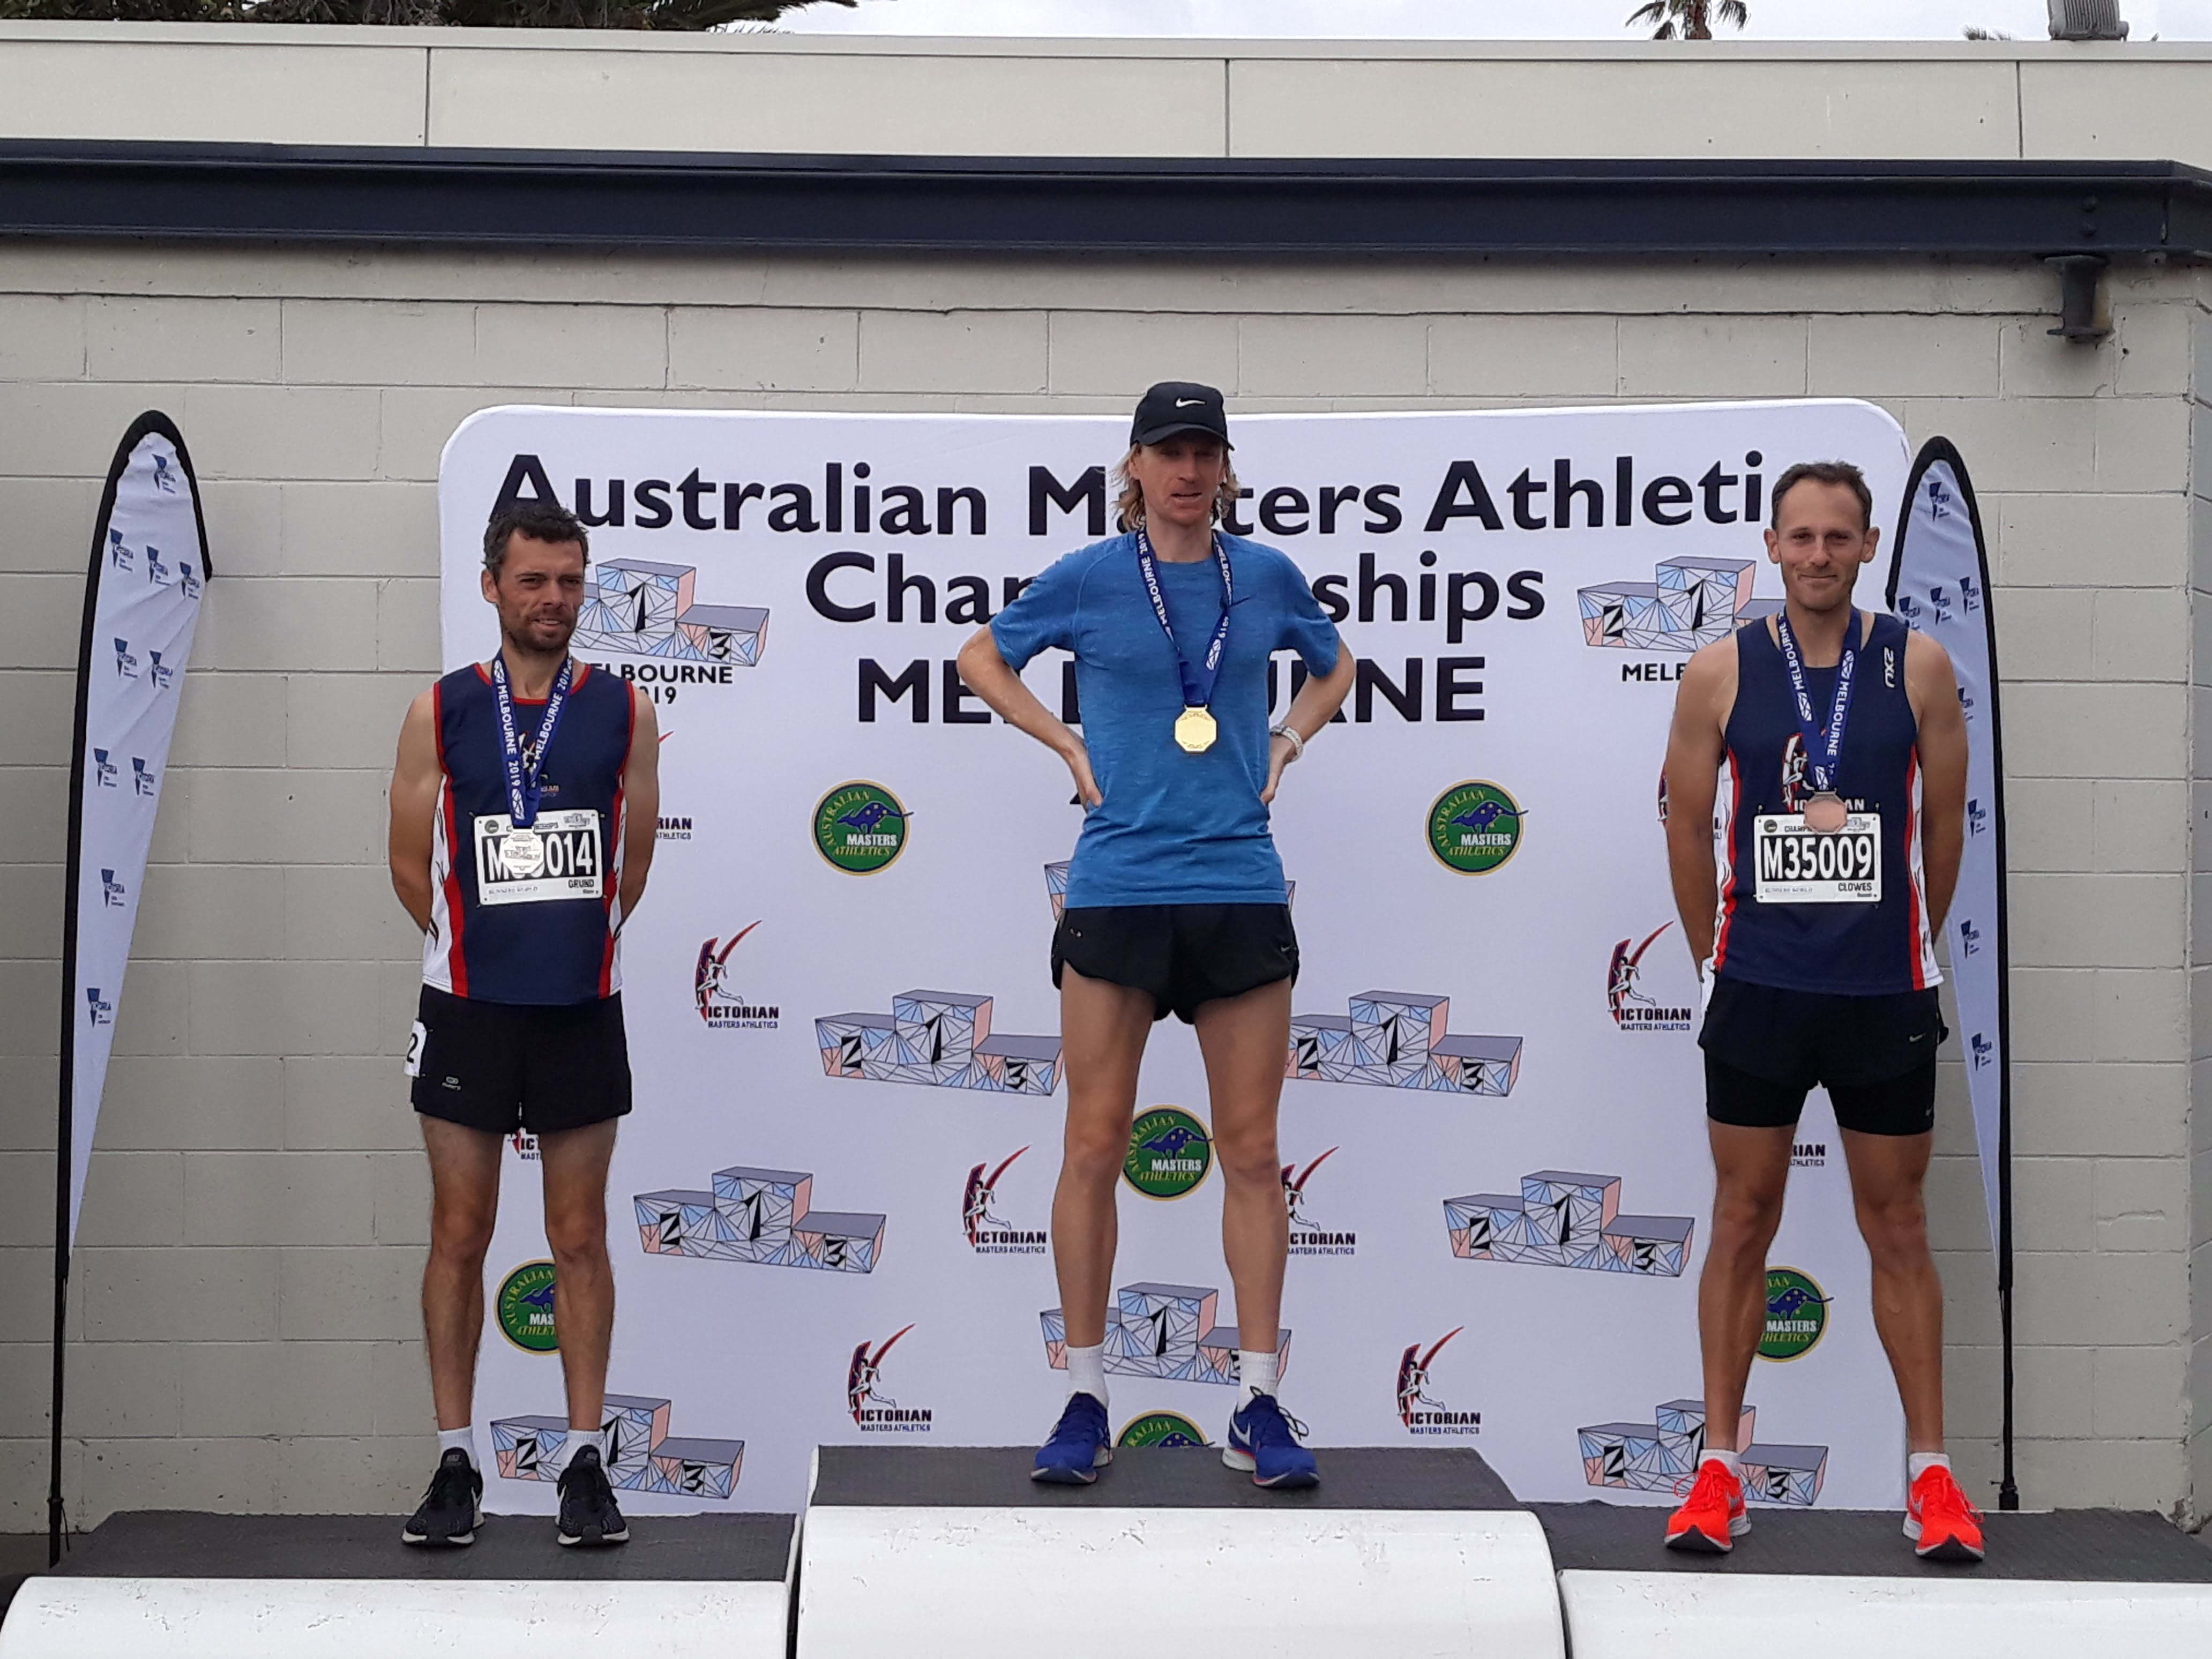 Shane Grund and Russell Clowes second and third in 2019 Australian Masters Athletics 5000m National Championships Men 35-39